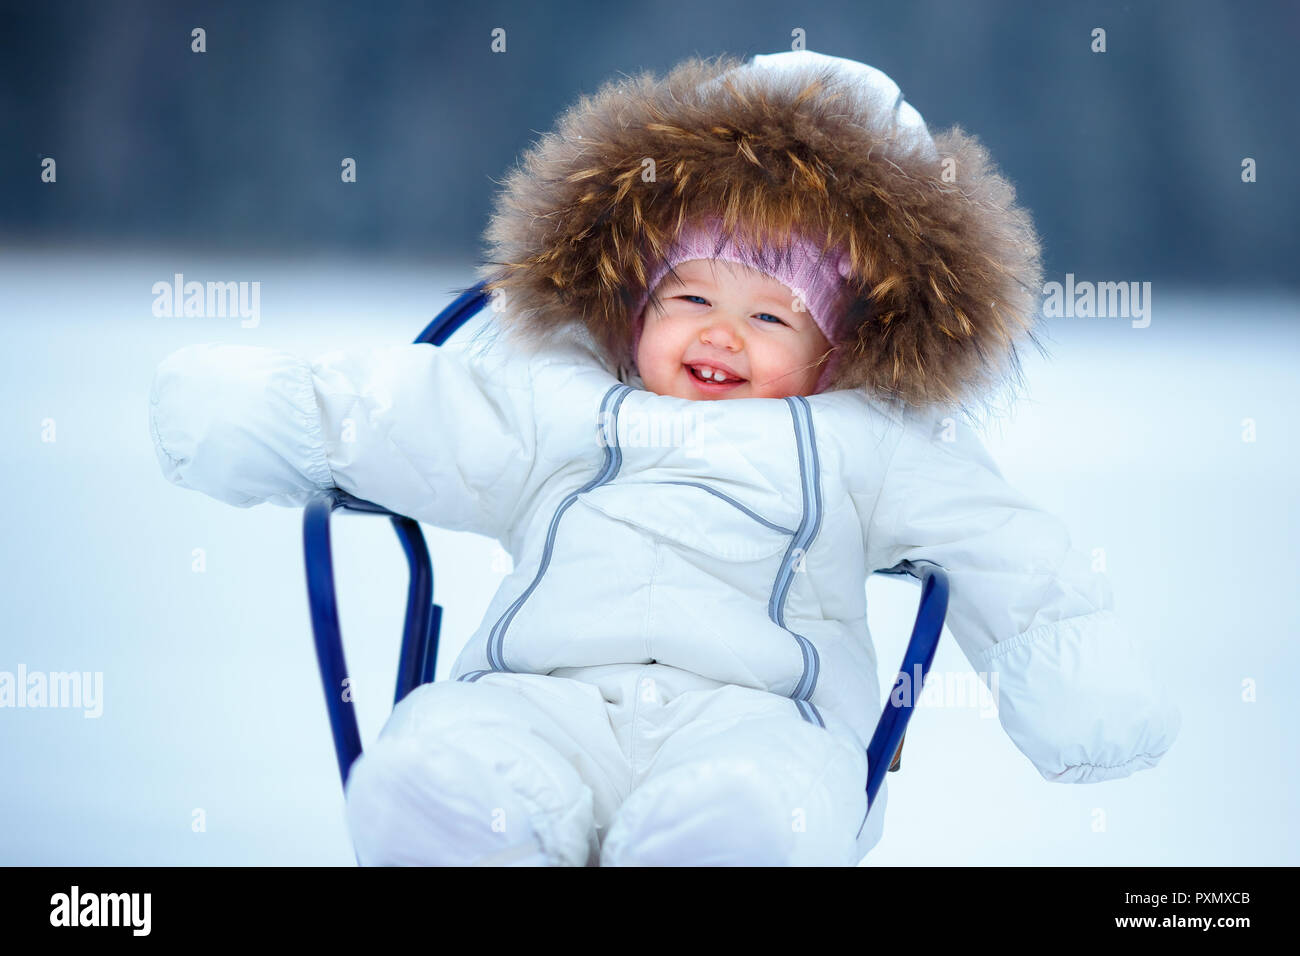 18dfe1c6fe5a Sled and snow fun for kids. Baby sledding in snowy winter park ...